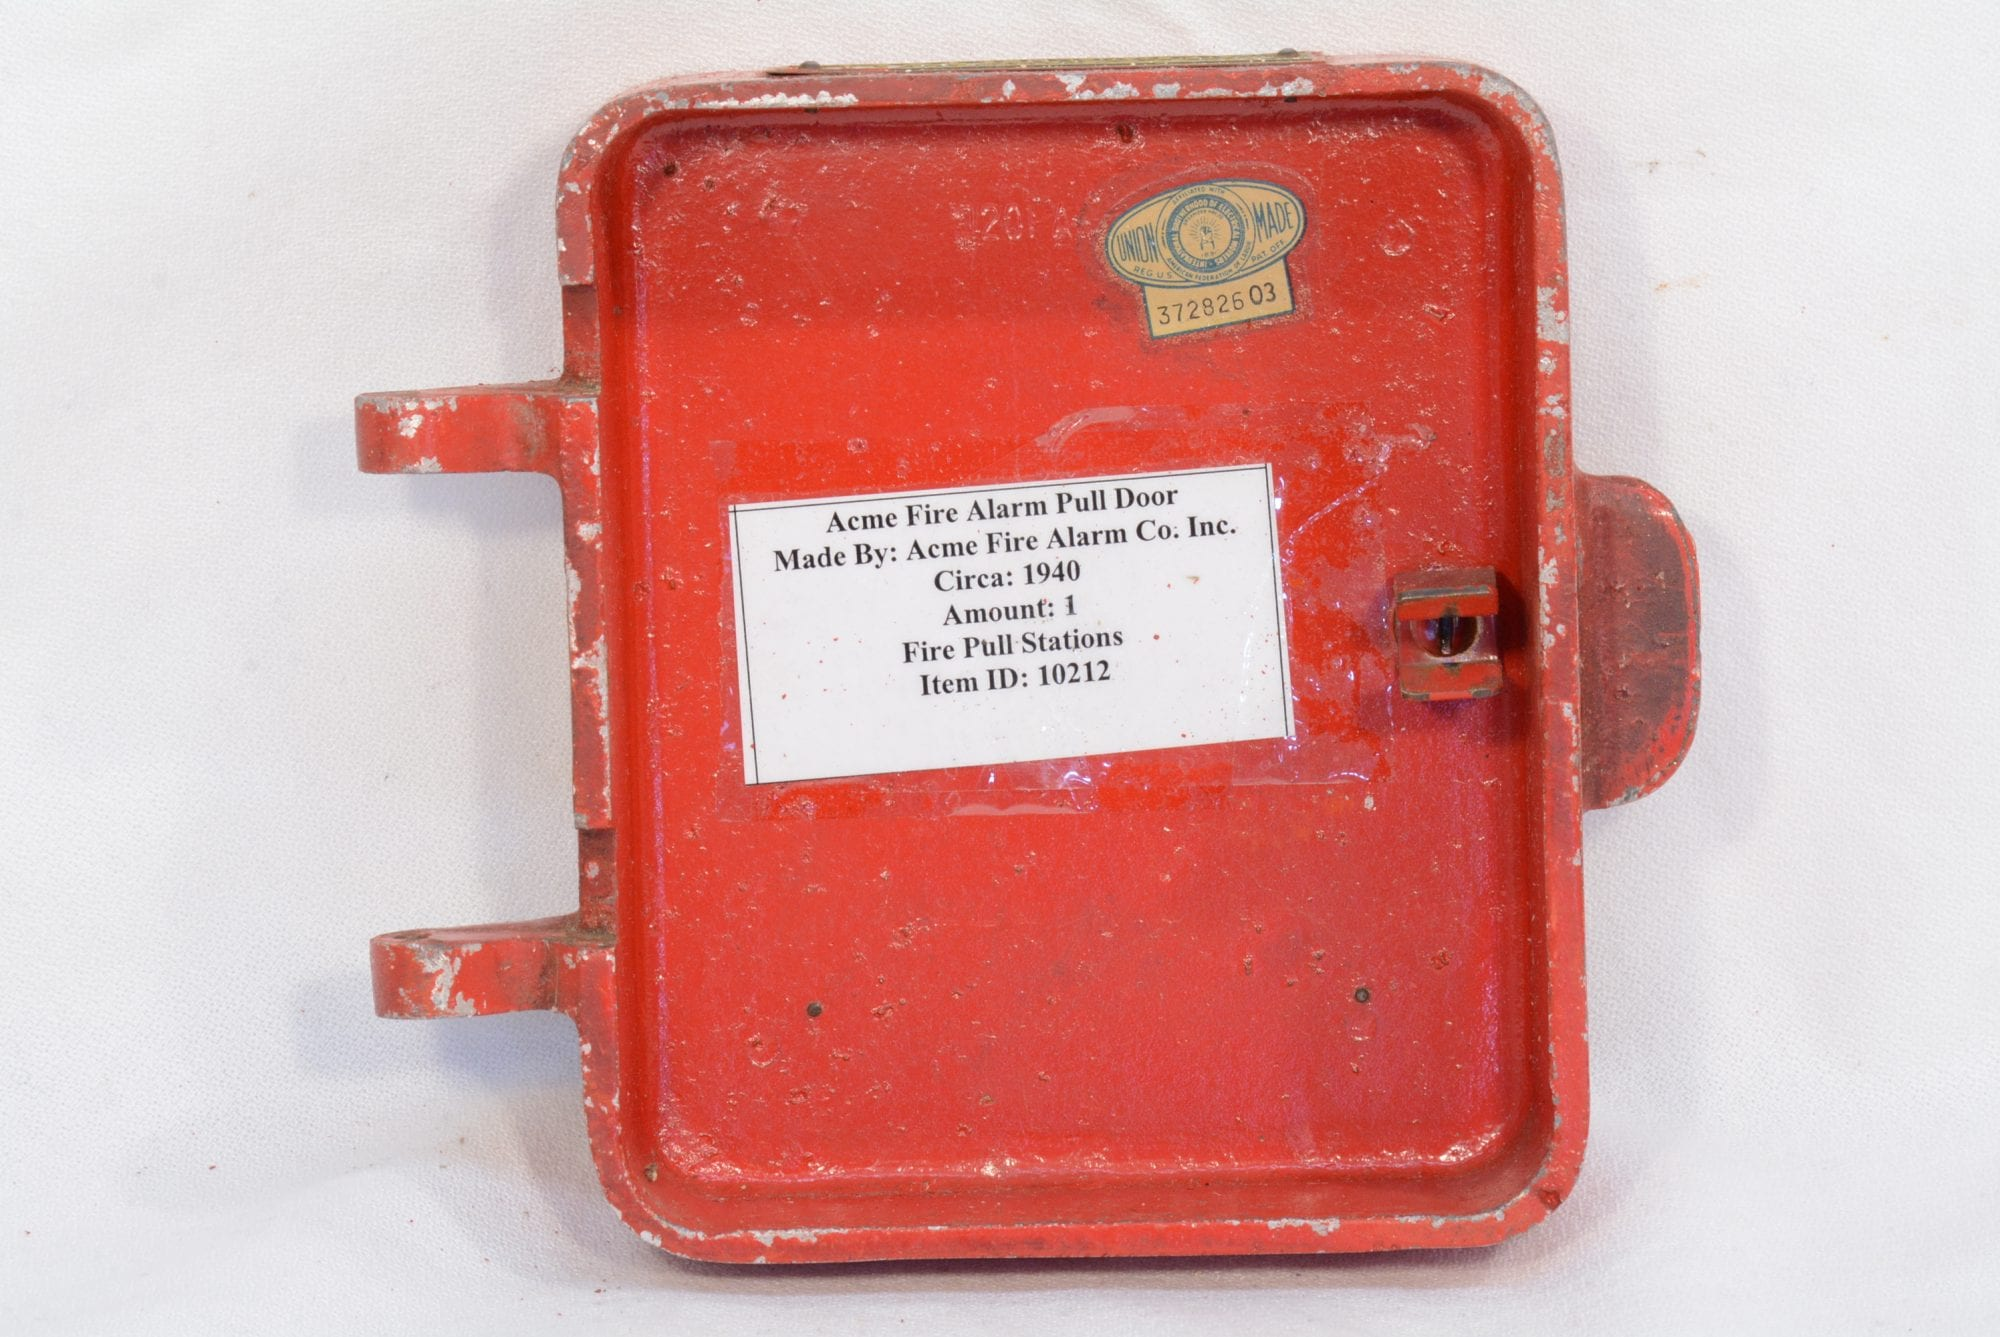 Acme Fire Alarm Pull Door Wayne Alarm Systems